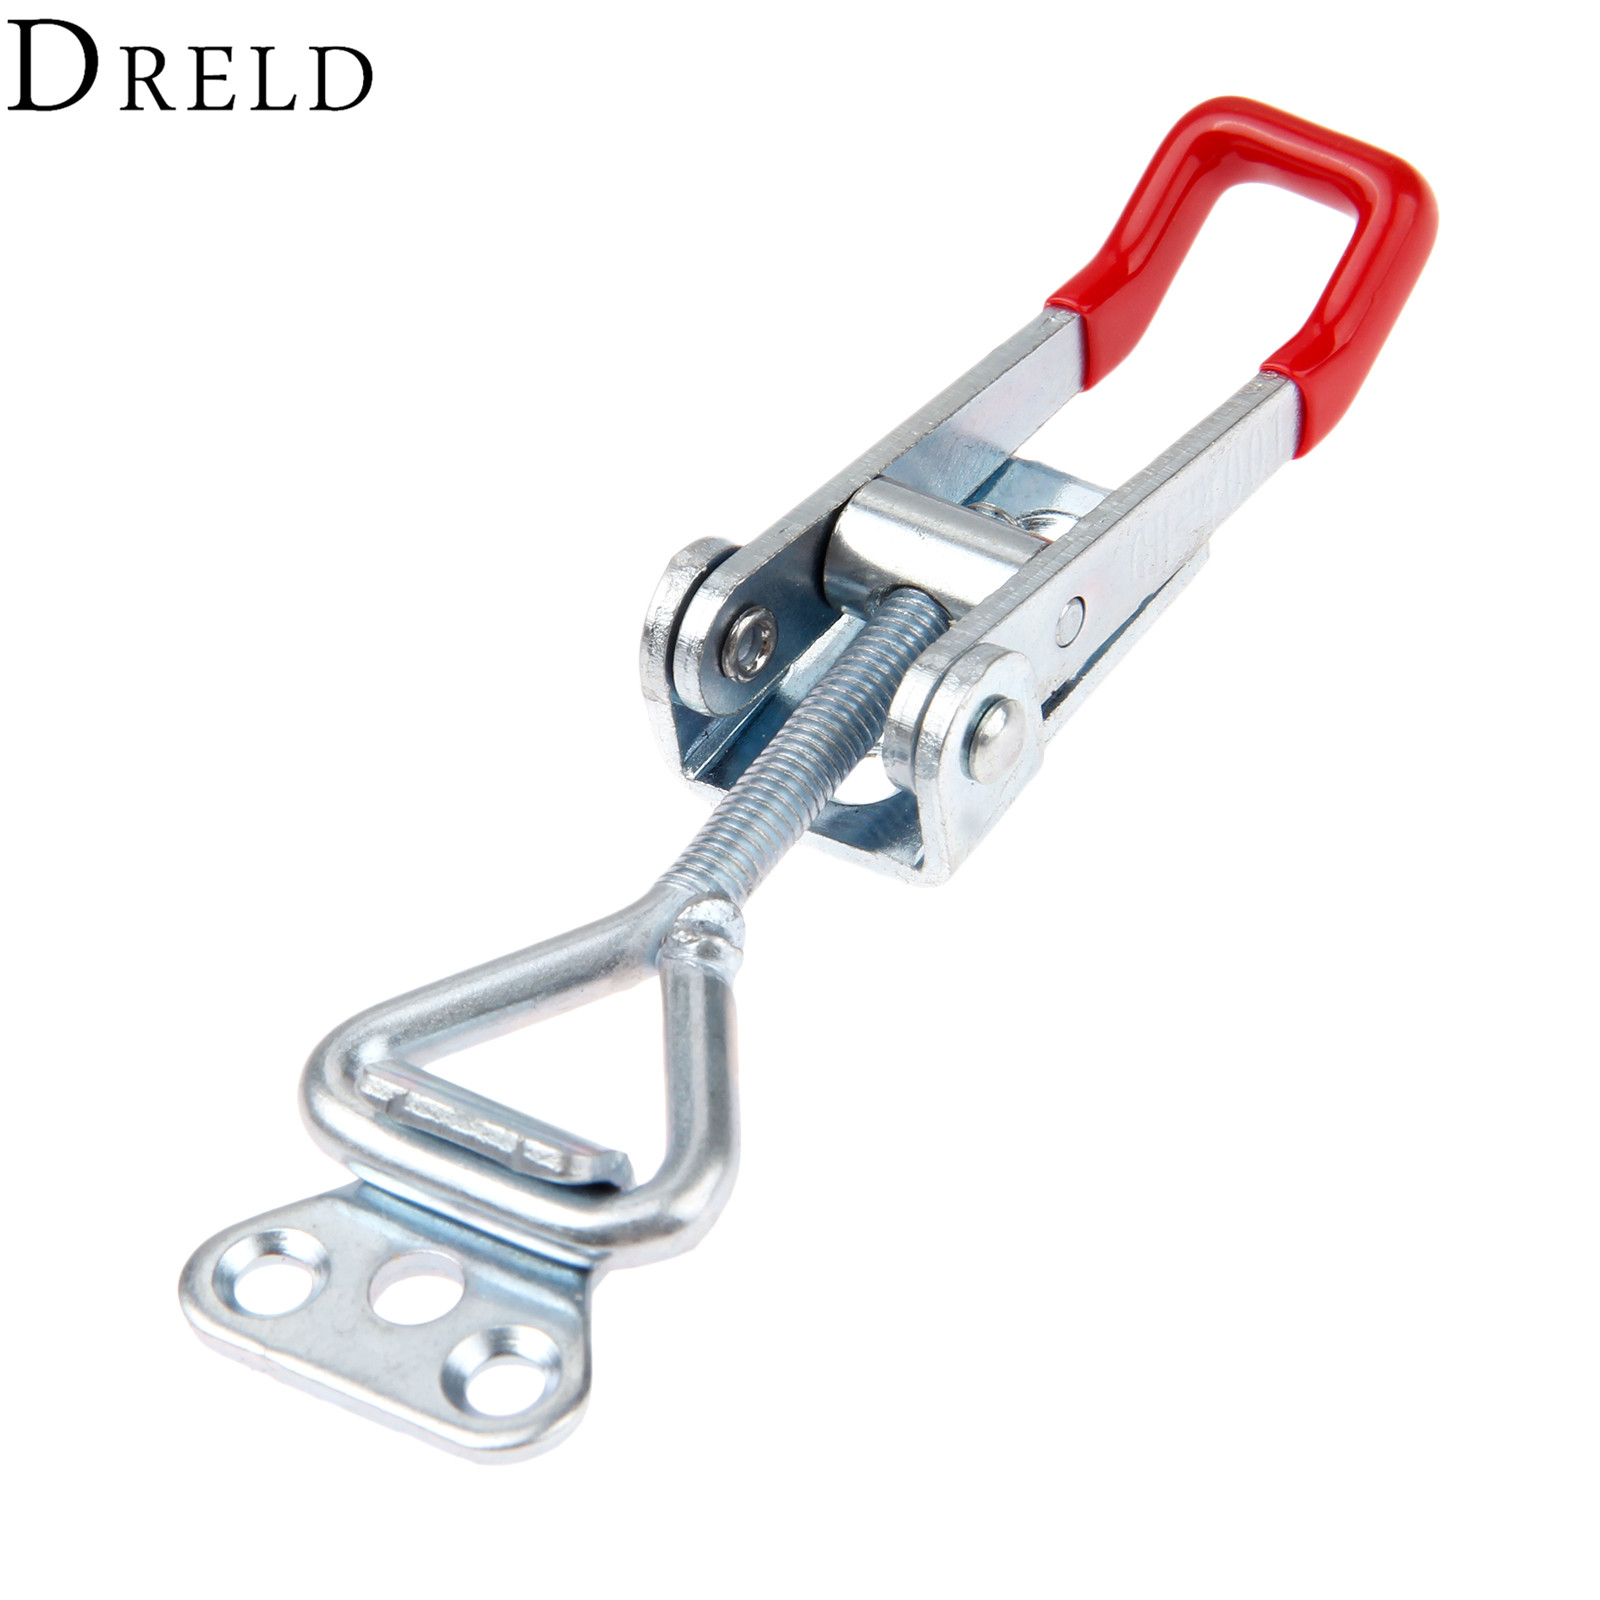 DRELD 1pc GH-4001 Parighasana Toggle Clamp Clip 100KG/220Lbs Holding Capacity Quick Metal Latch Hand Tool Fixture Clamp